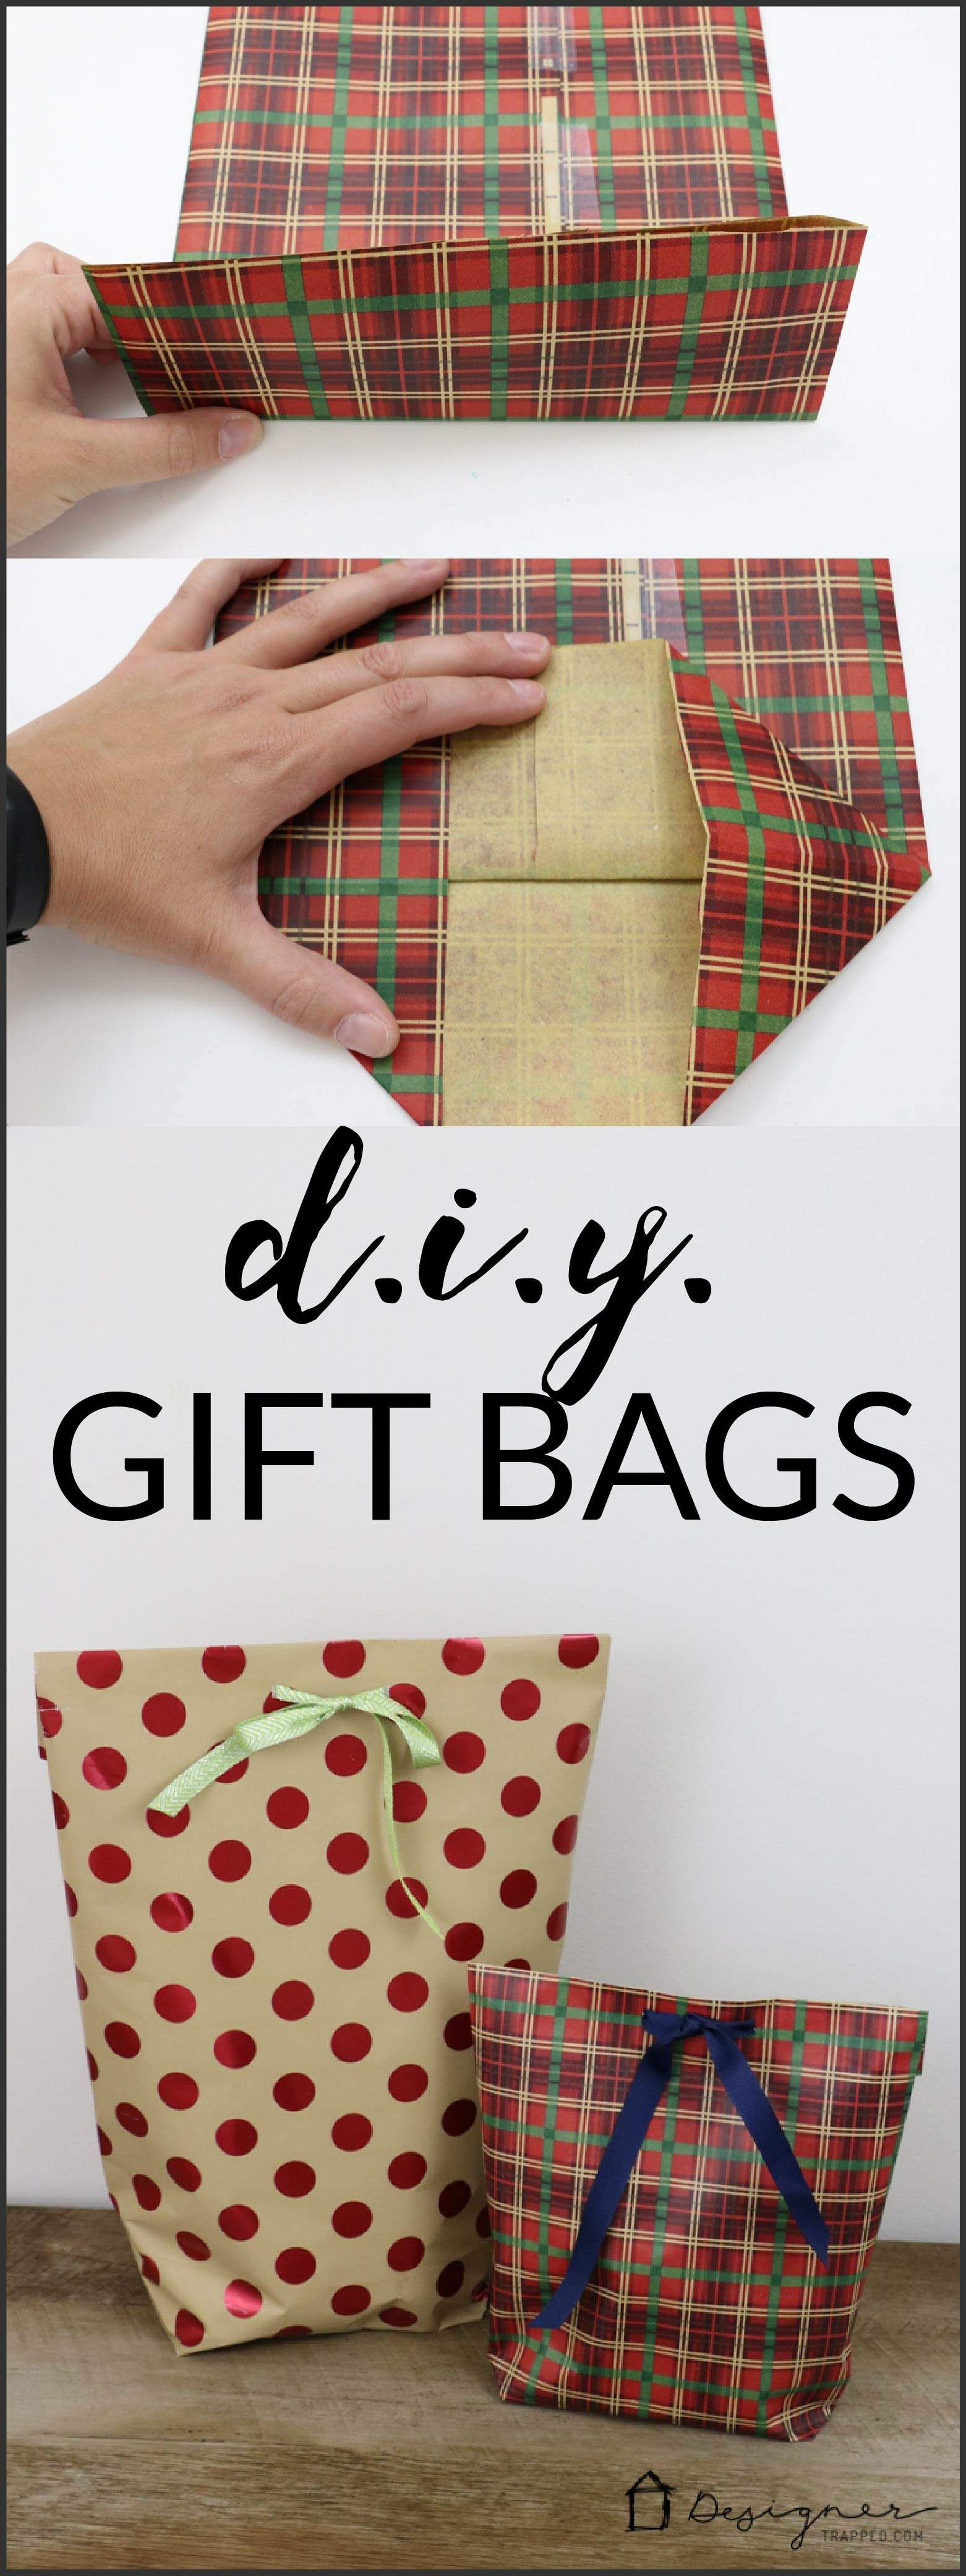 How To Make A DIY Gift Bag For Christmas is part of Gift bags diy - This DIY gift bag tutorial let's you use the wrapping paper you already have on hand to make gorgeous gift bags! You'll never buy another gift bag again